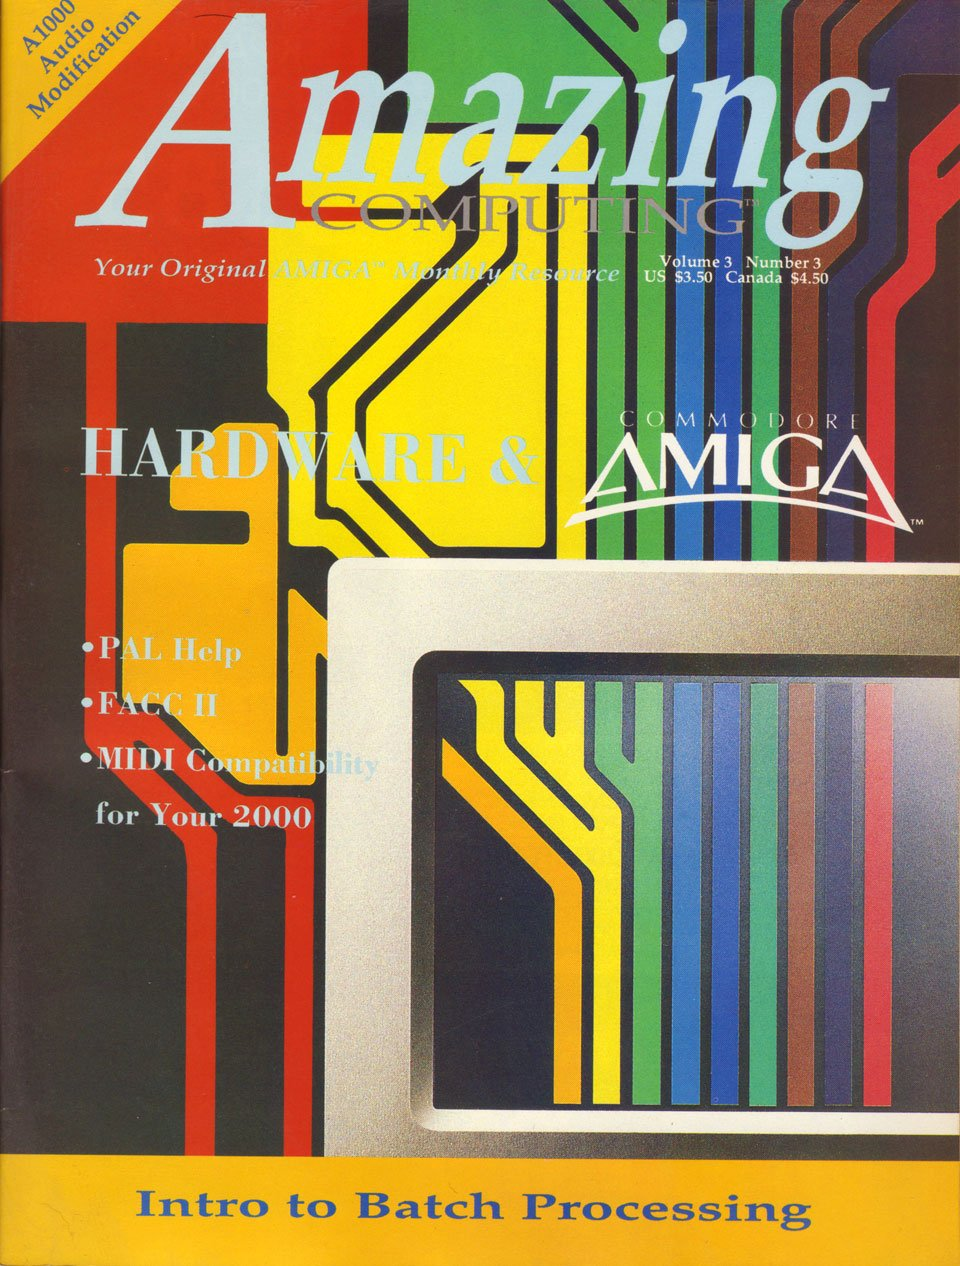 Amazing Computing Issue 024 Vol. 03 No. 03 (March 1988)